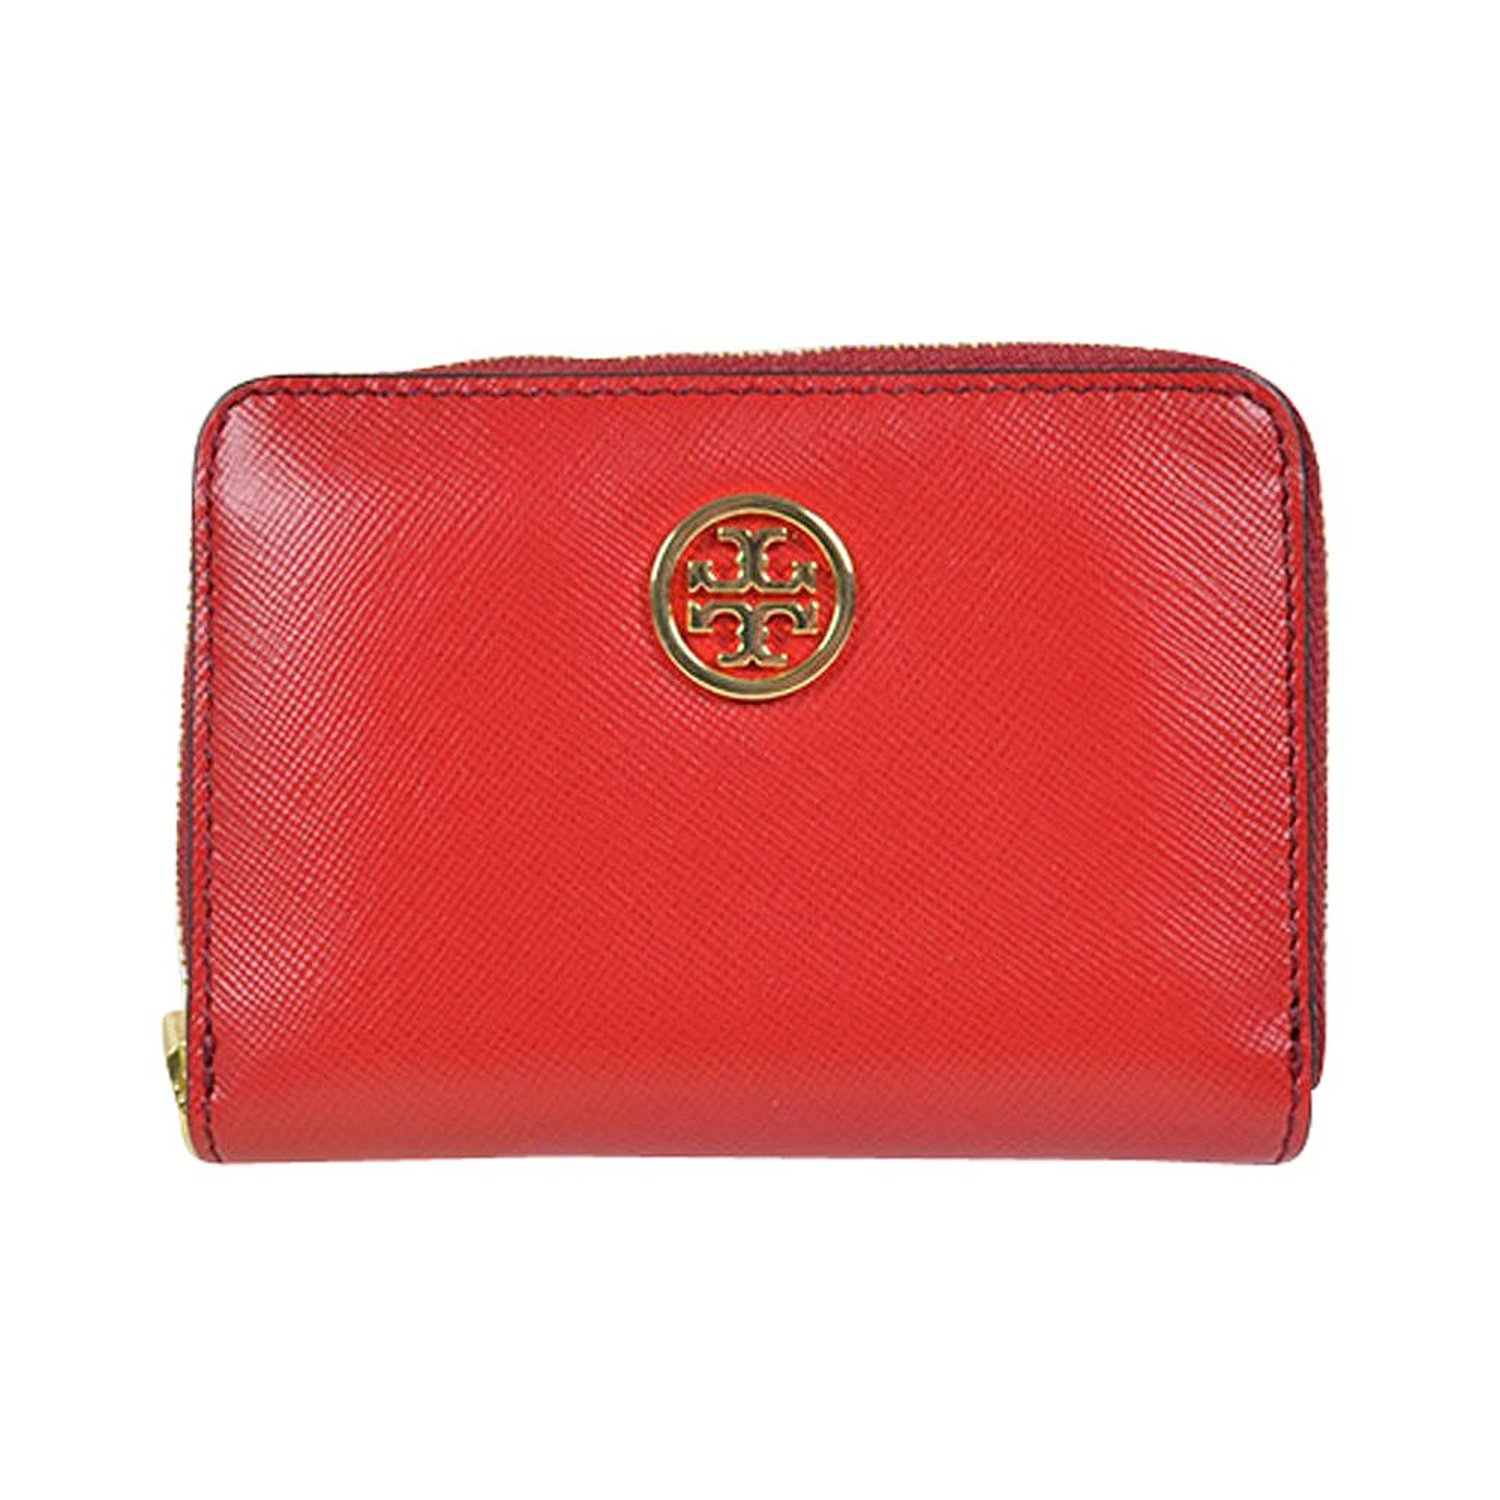 NWT AUTH NEW TORY BURCH Amanda Amalie Dena All T Robinson Zip Coin